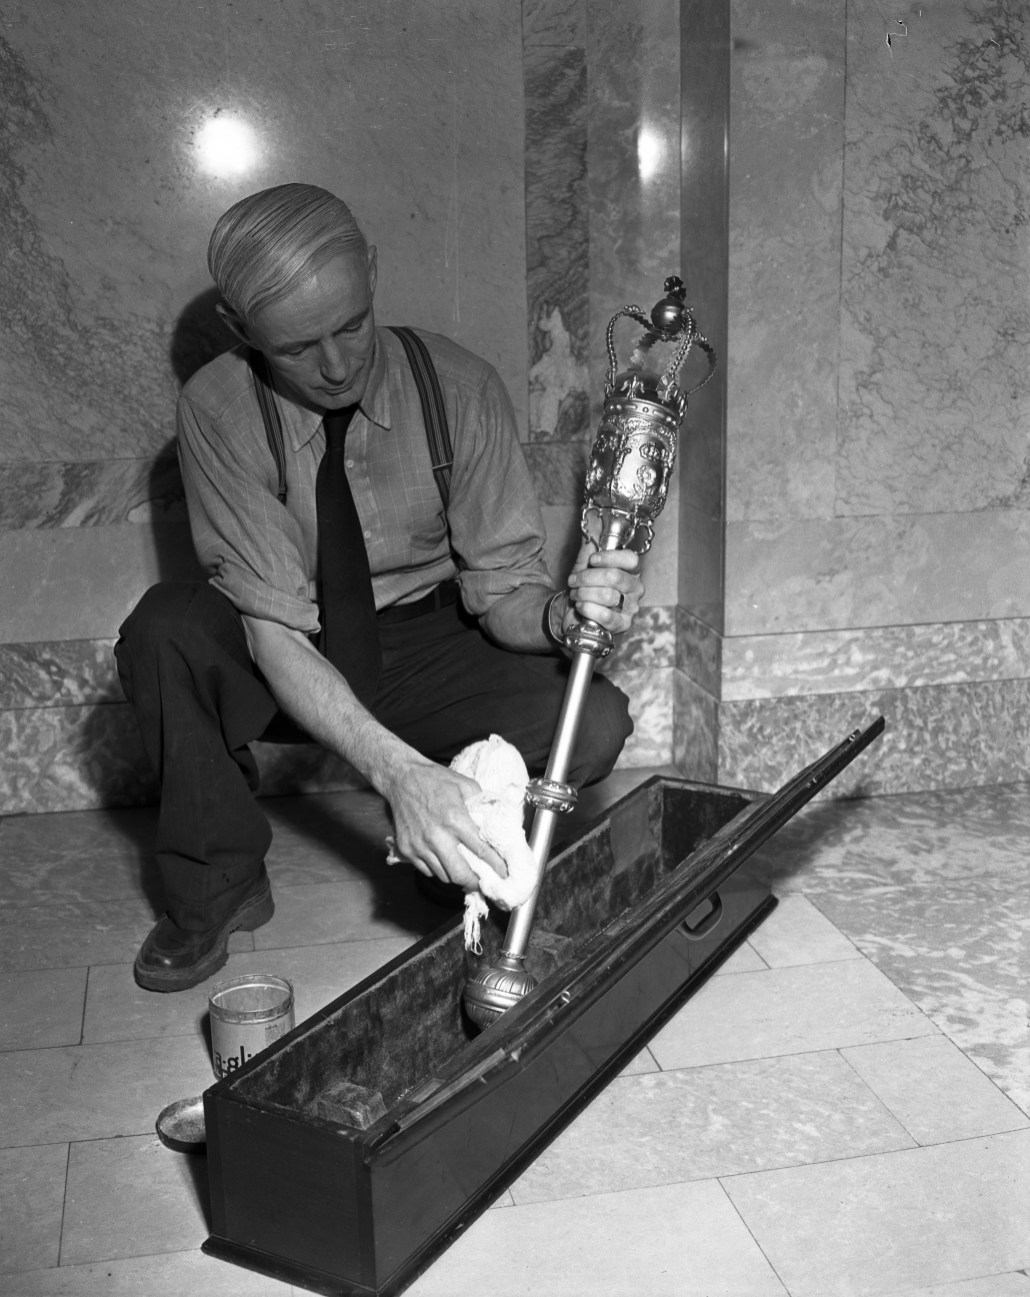 Preparing for Legislative Assembly opening. Alex McPhee shines the mace on February 21, 1950. Photo courtesy of the City of Edmonton Archives EA-600-3898a.